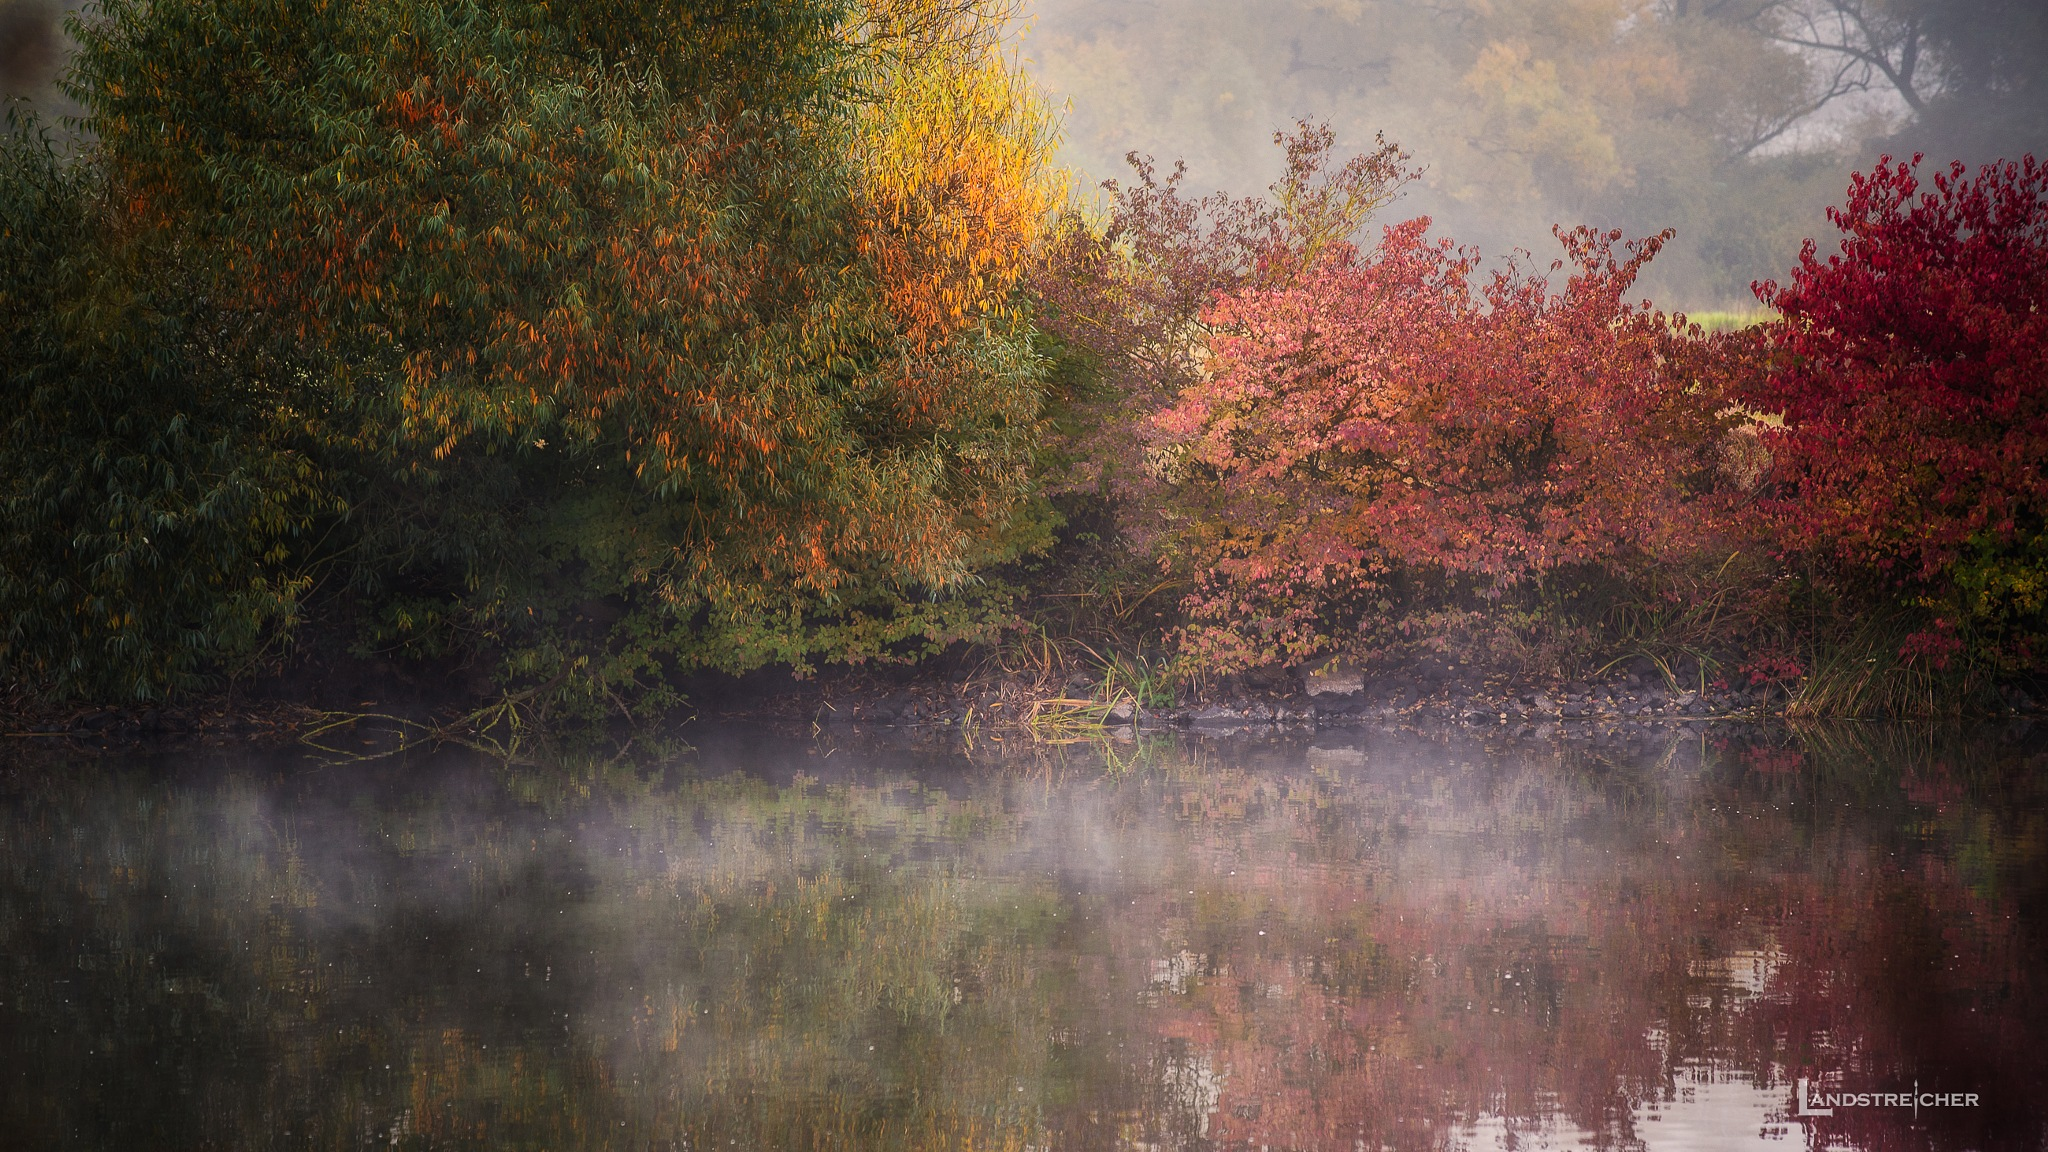 Colors of Fall by Landstreicher